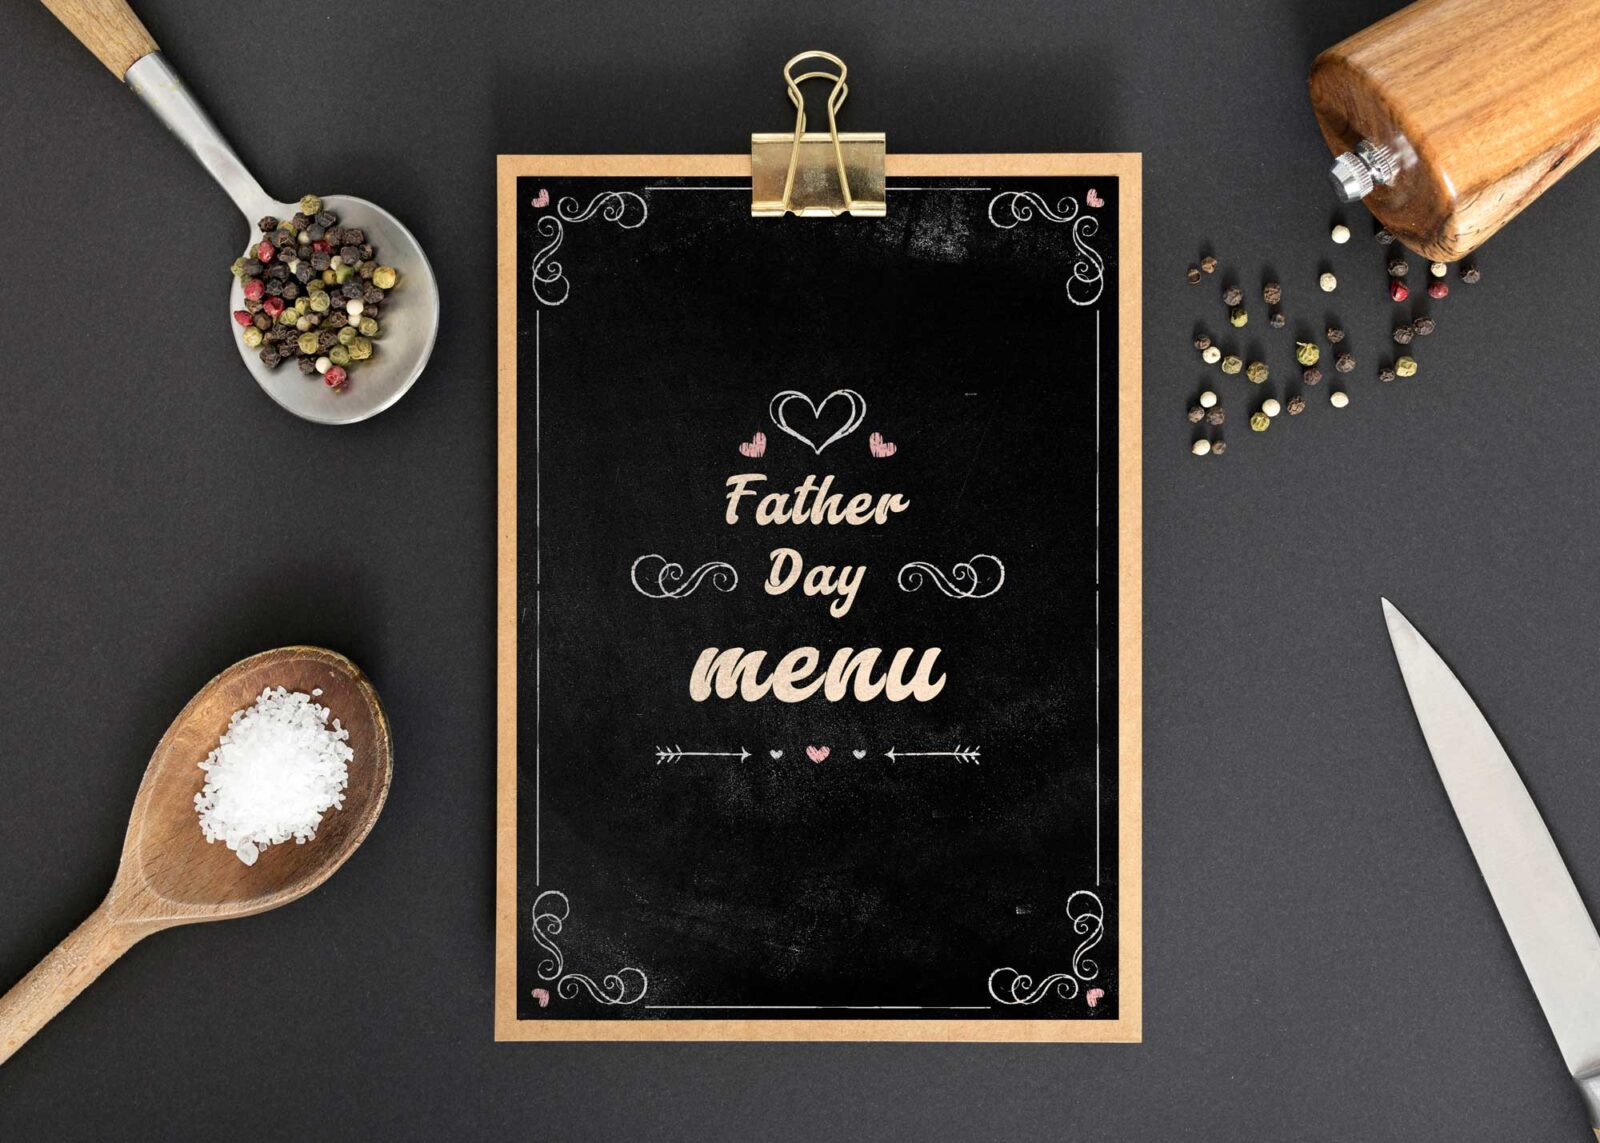 Father Day Menu Design Templates